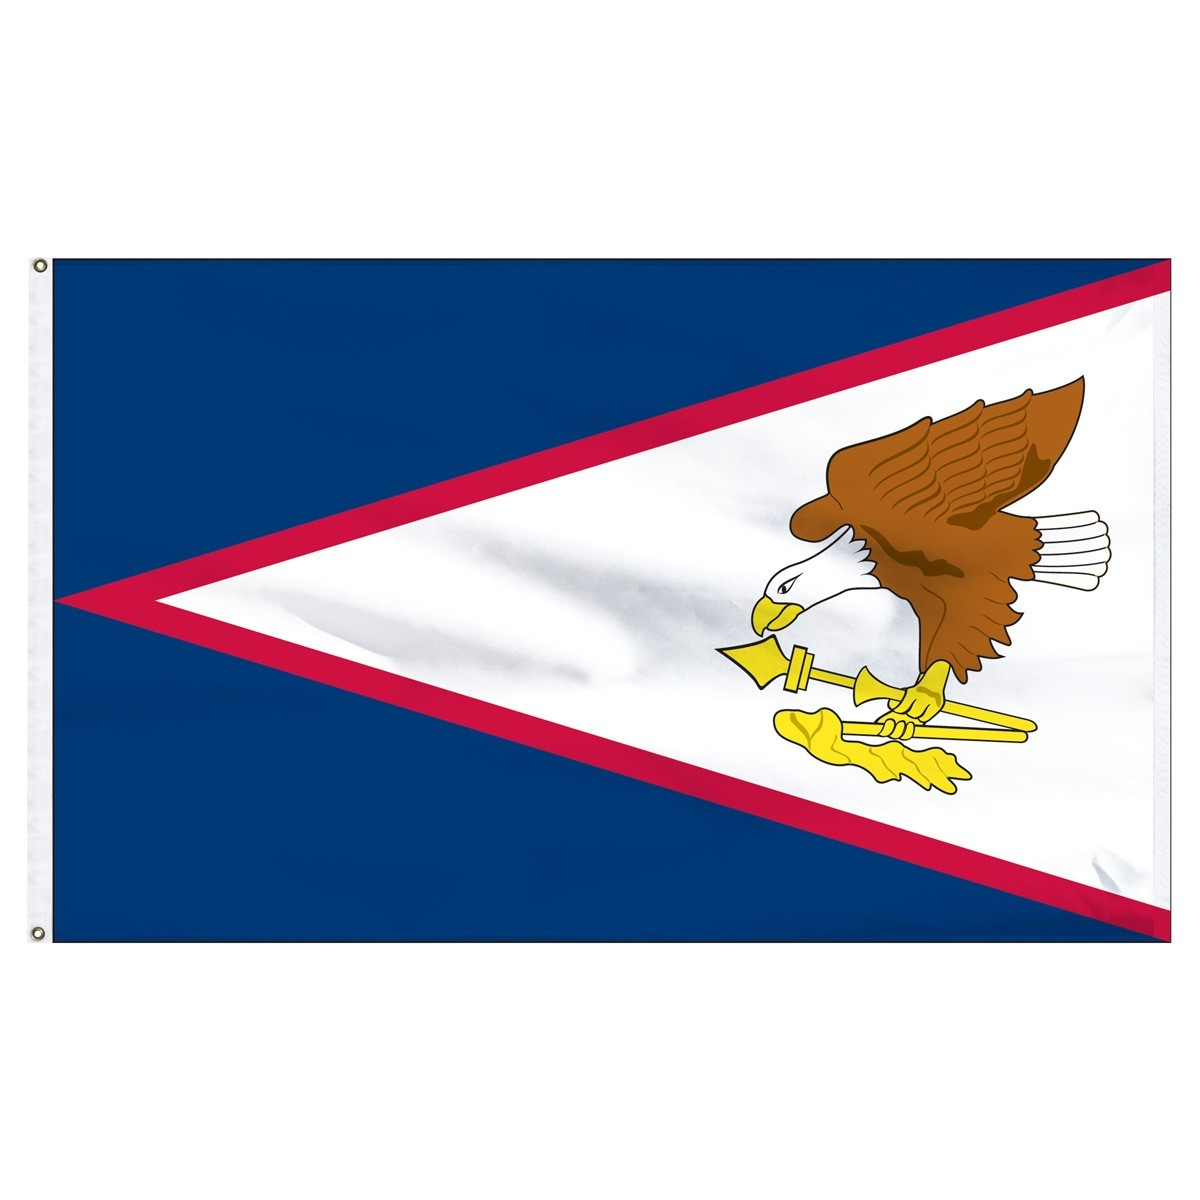 American Samoa 3' x 5' Outdoor Nylon Flag